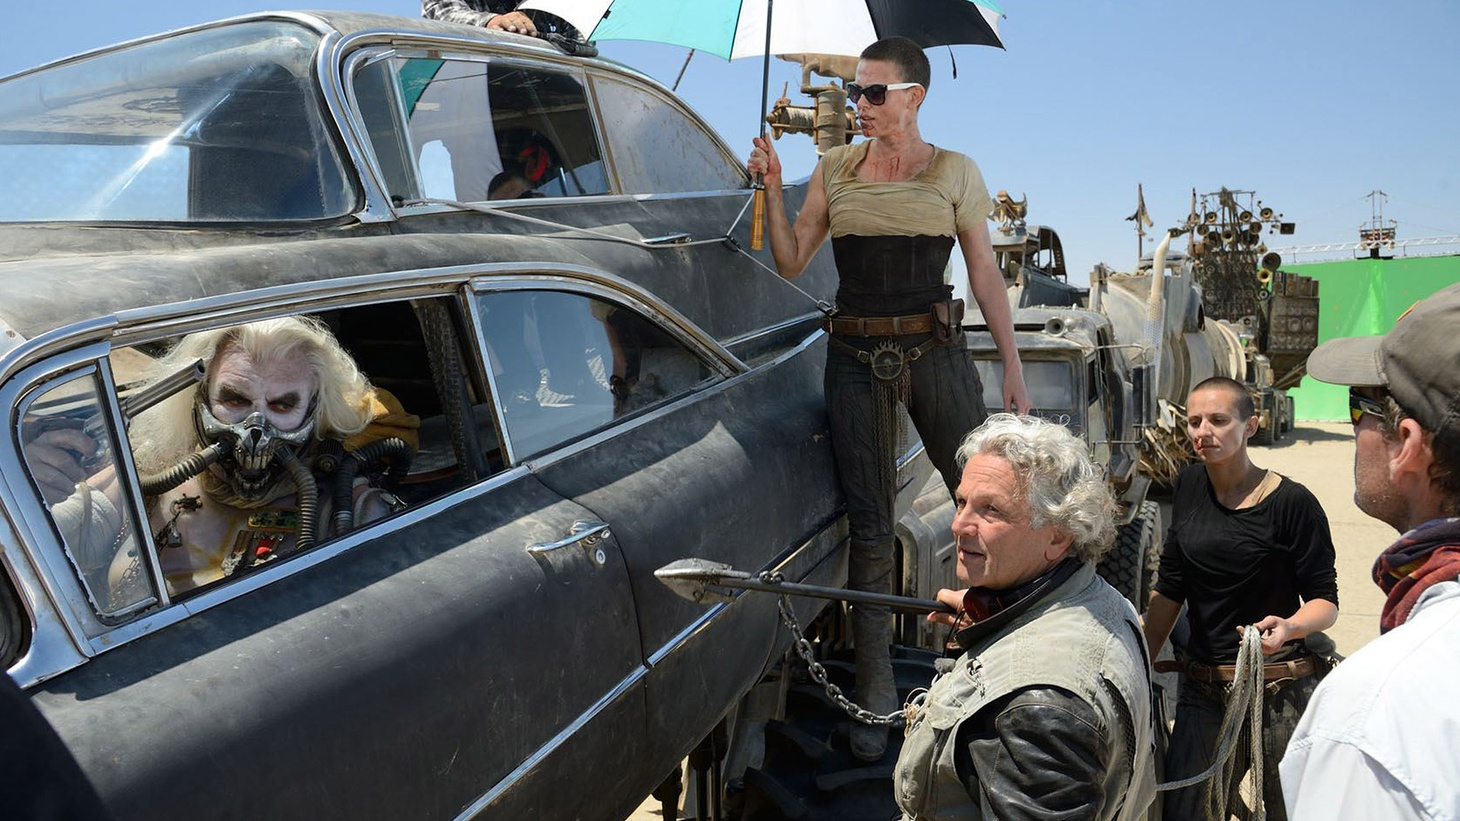 Director George Miller joins Elvis Mitchell to discuss the Oscar nominated fourth installment of his film franchise, Mad Max: Fury Road.